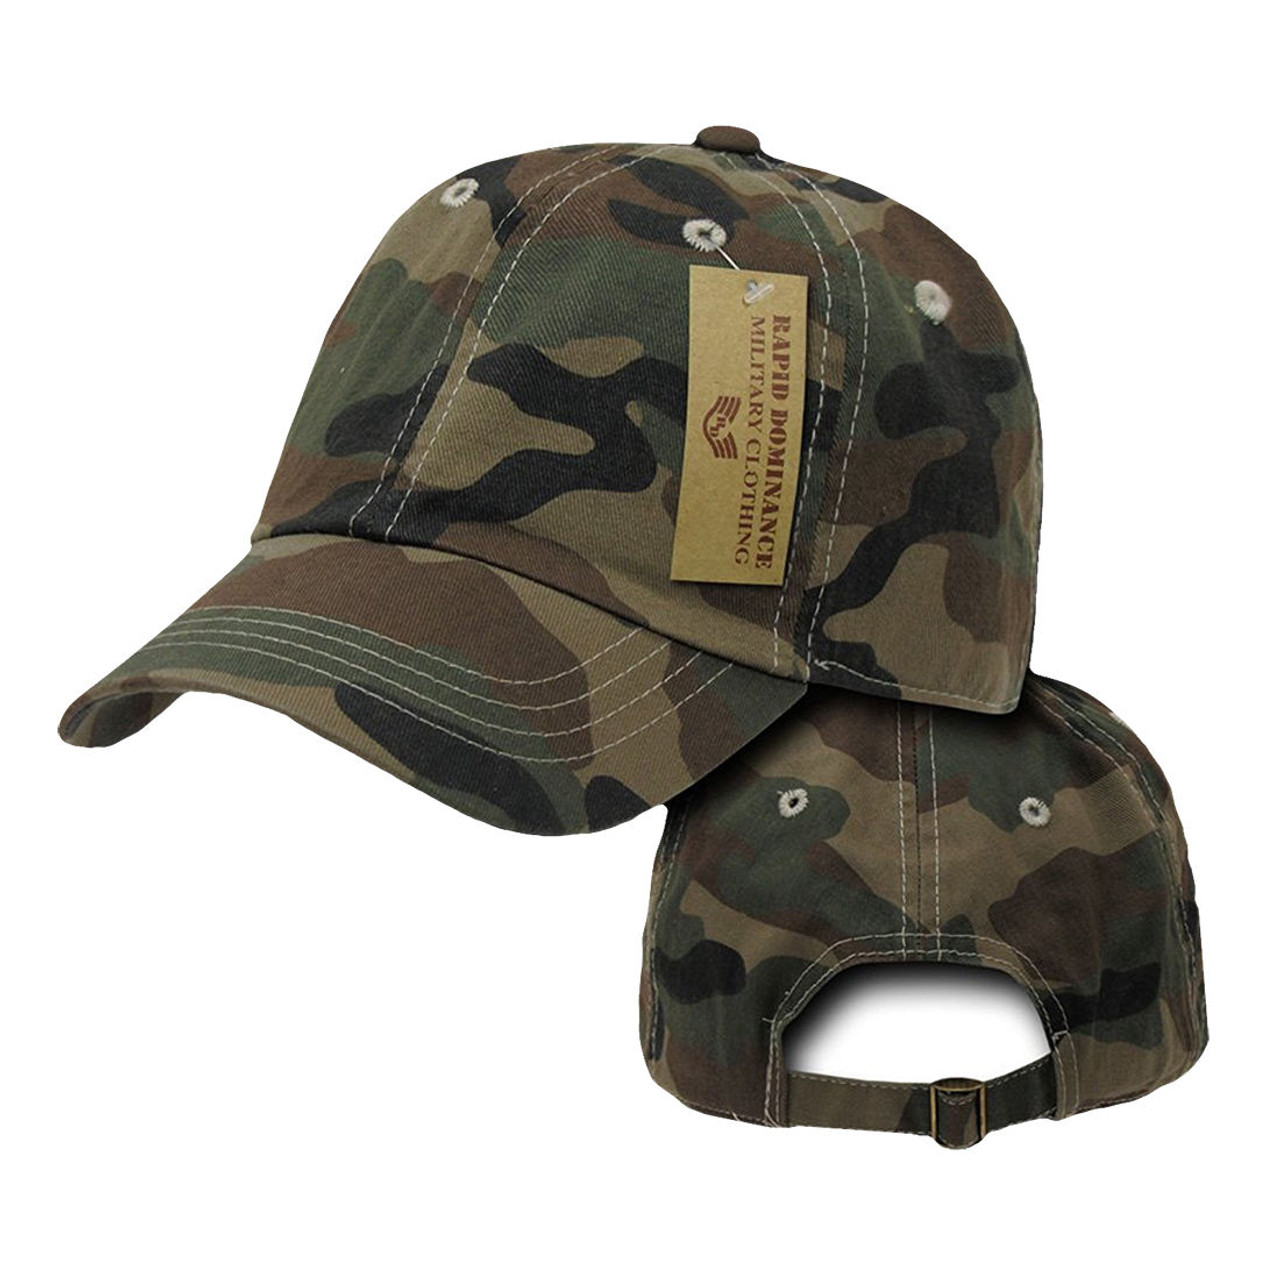 80f4129a996f7 Forest Woodland Camouflage Camo Army Washed Cotton Polo Baseball Ball Cap  Hat